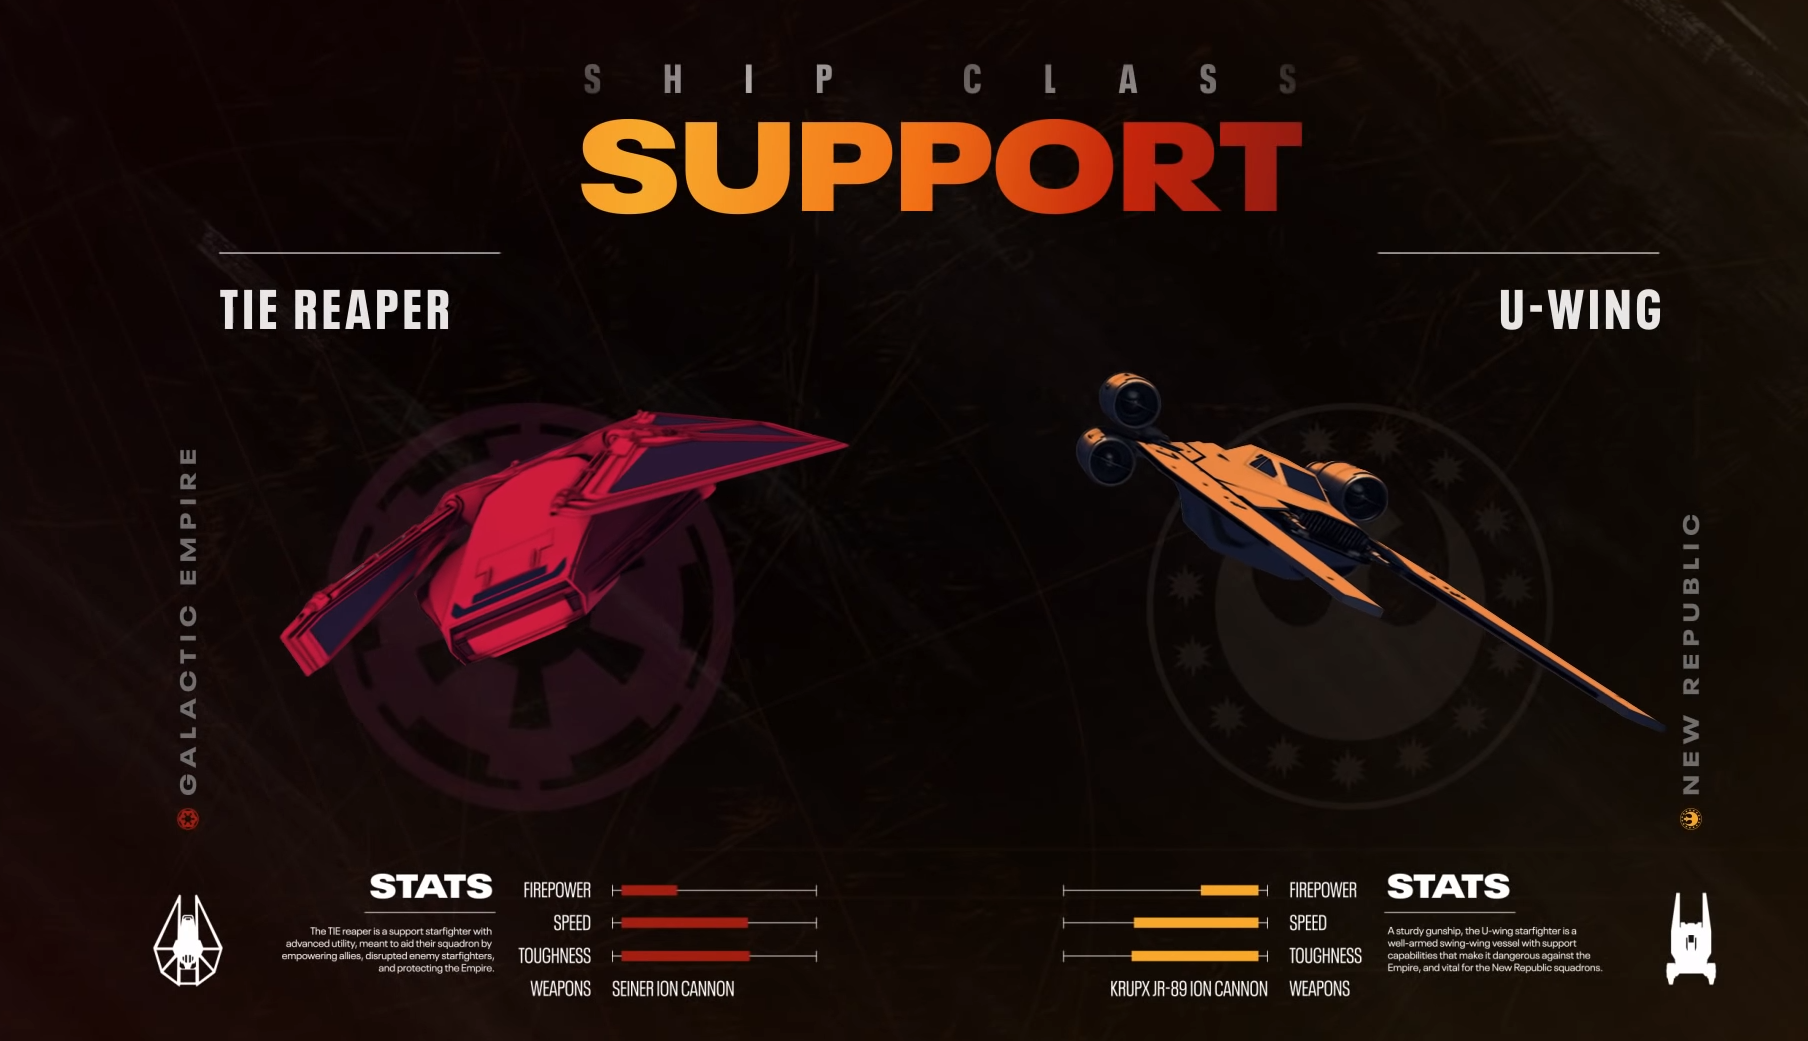 Star Wars: Squadrons Ships - Assistance